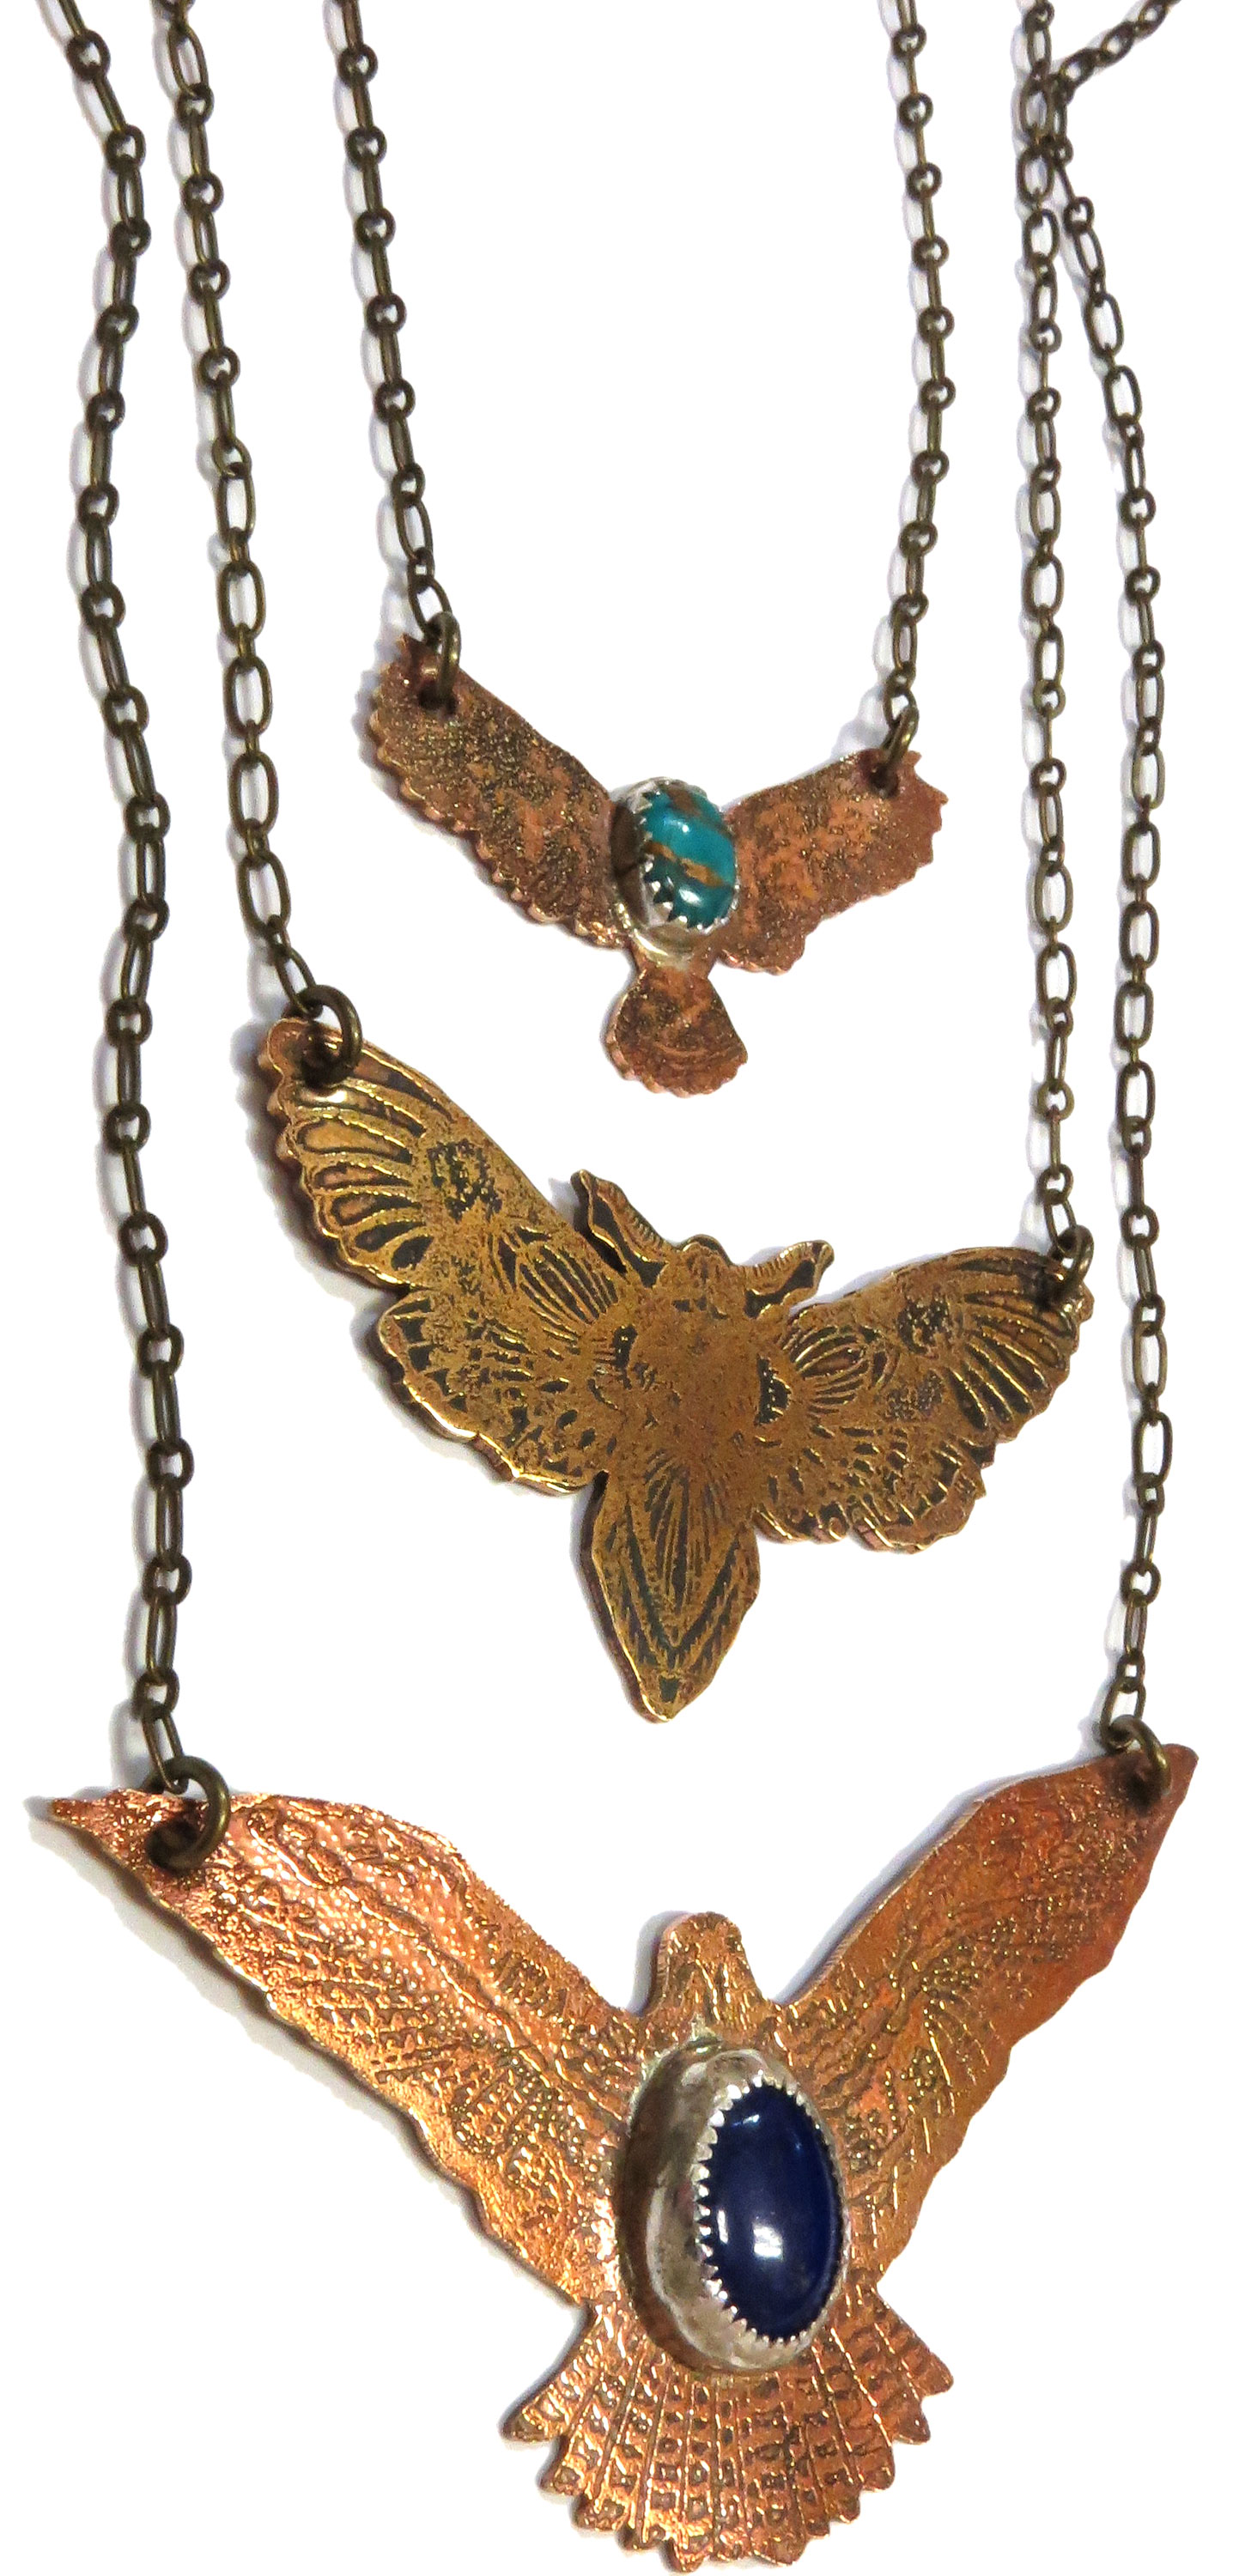 Winged Necklaces